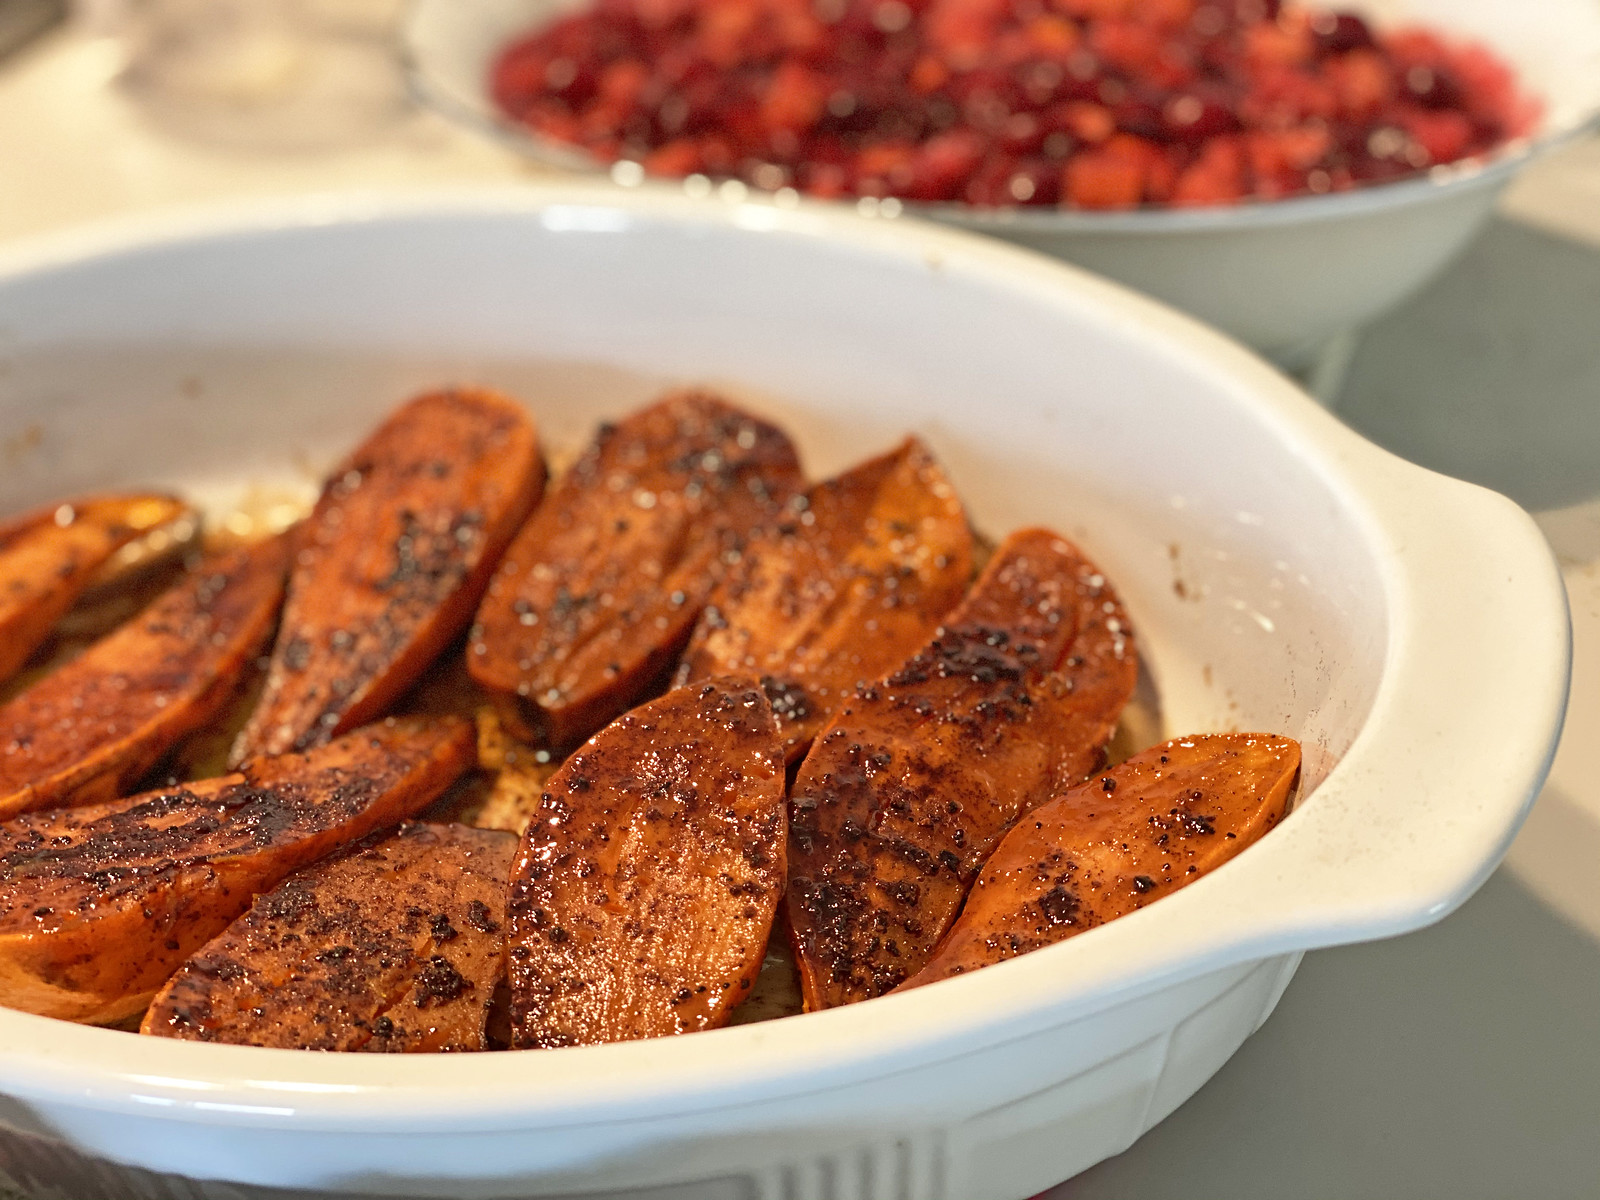 Cinnamon-spiced sweet potatoes